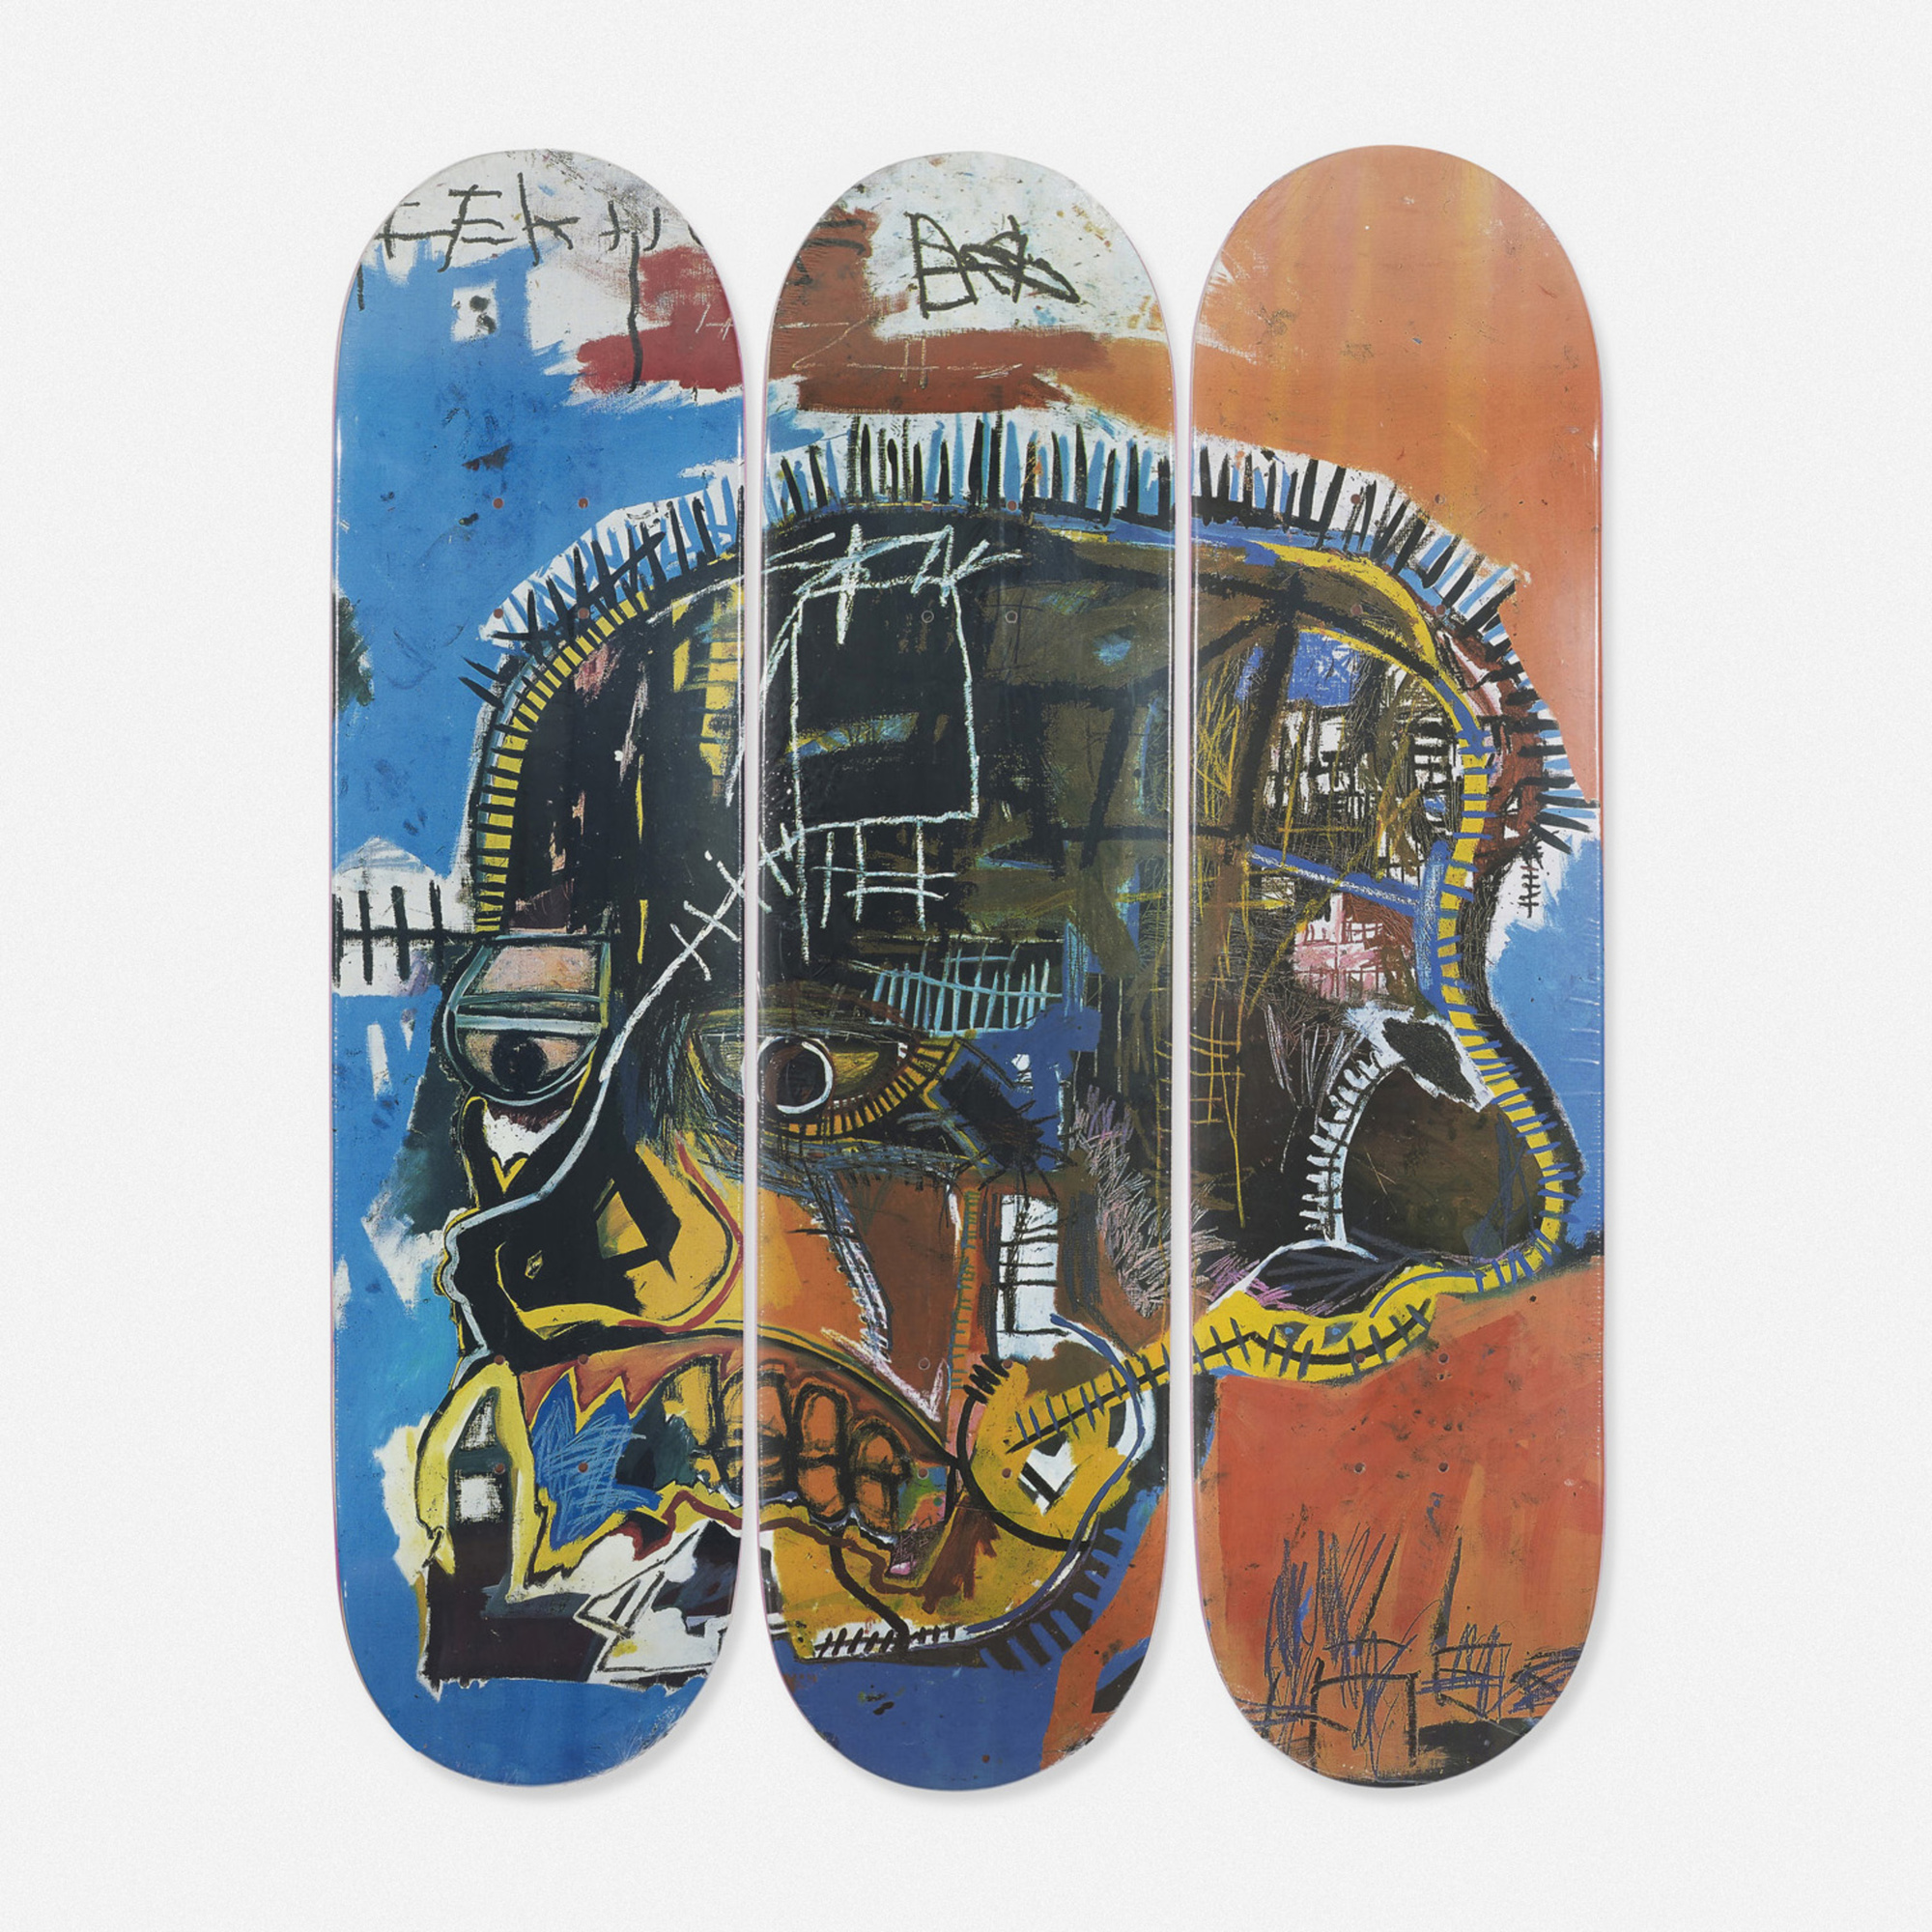 149: Jean-Michel Basquiat / skateboard decks, set of three (1 of 1)